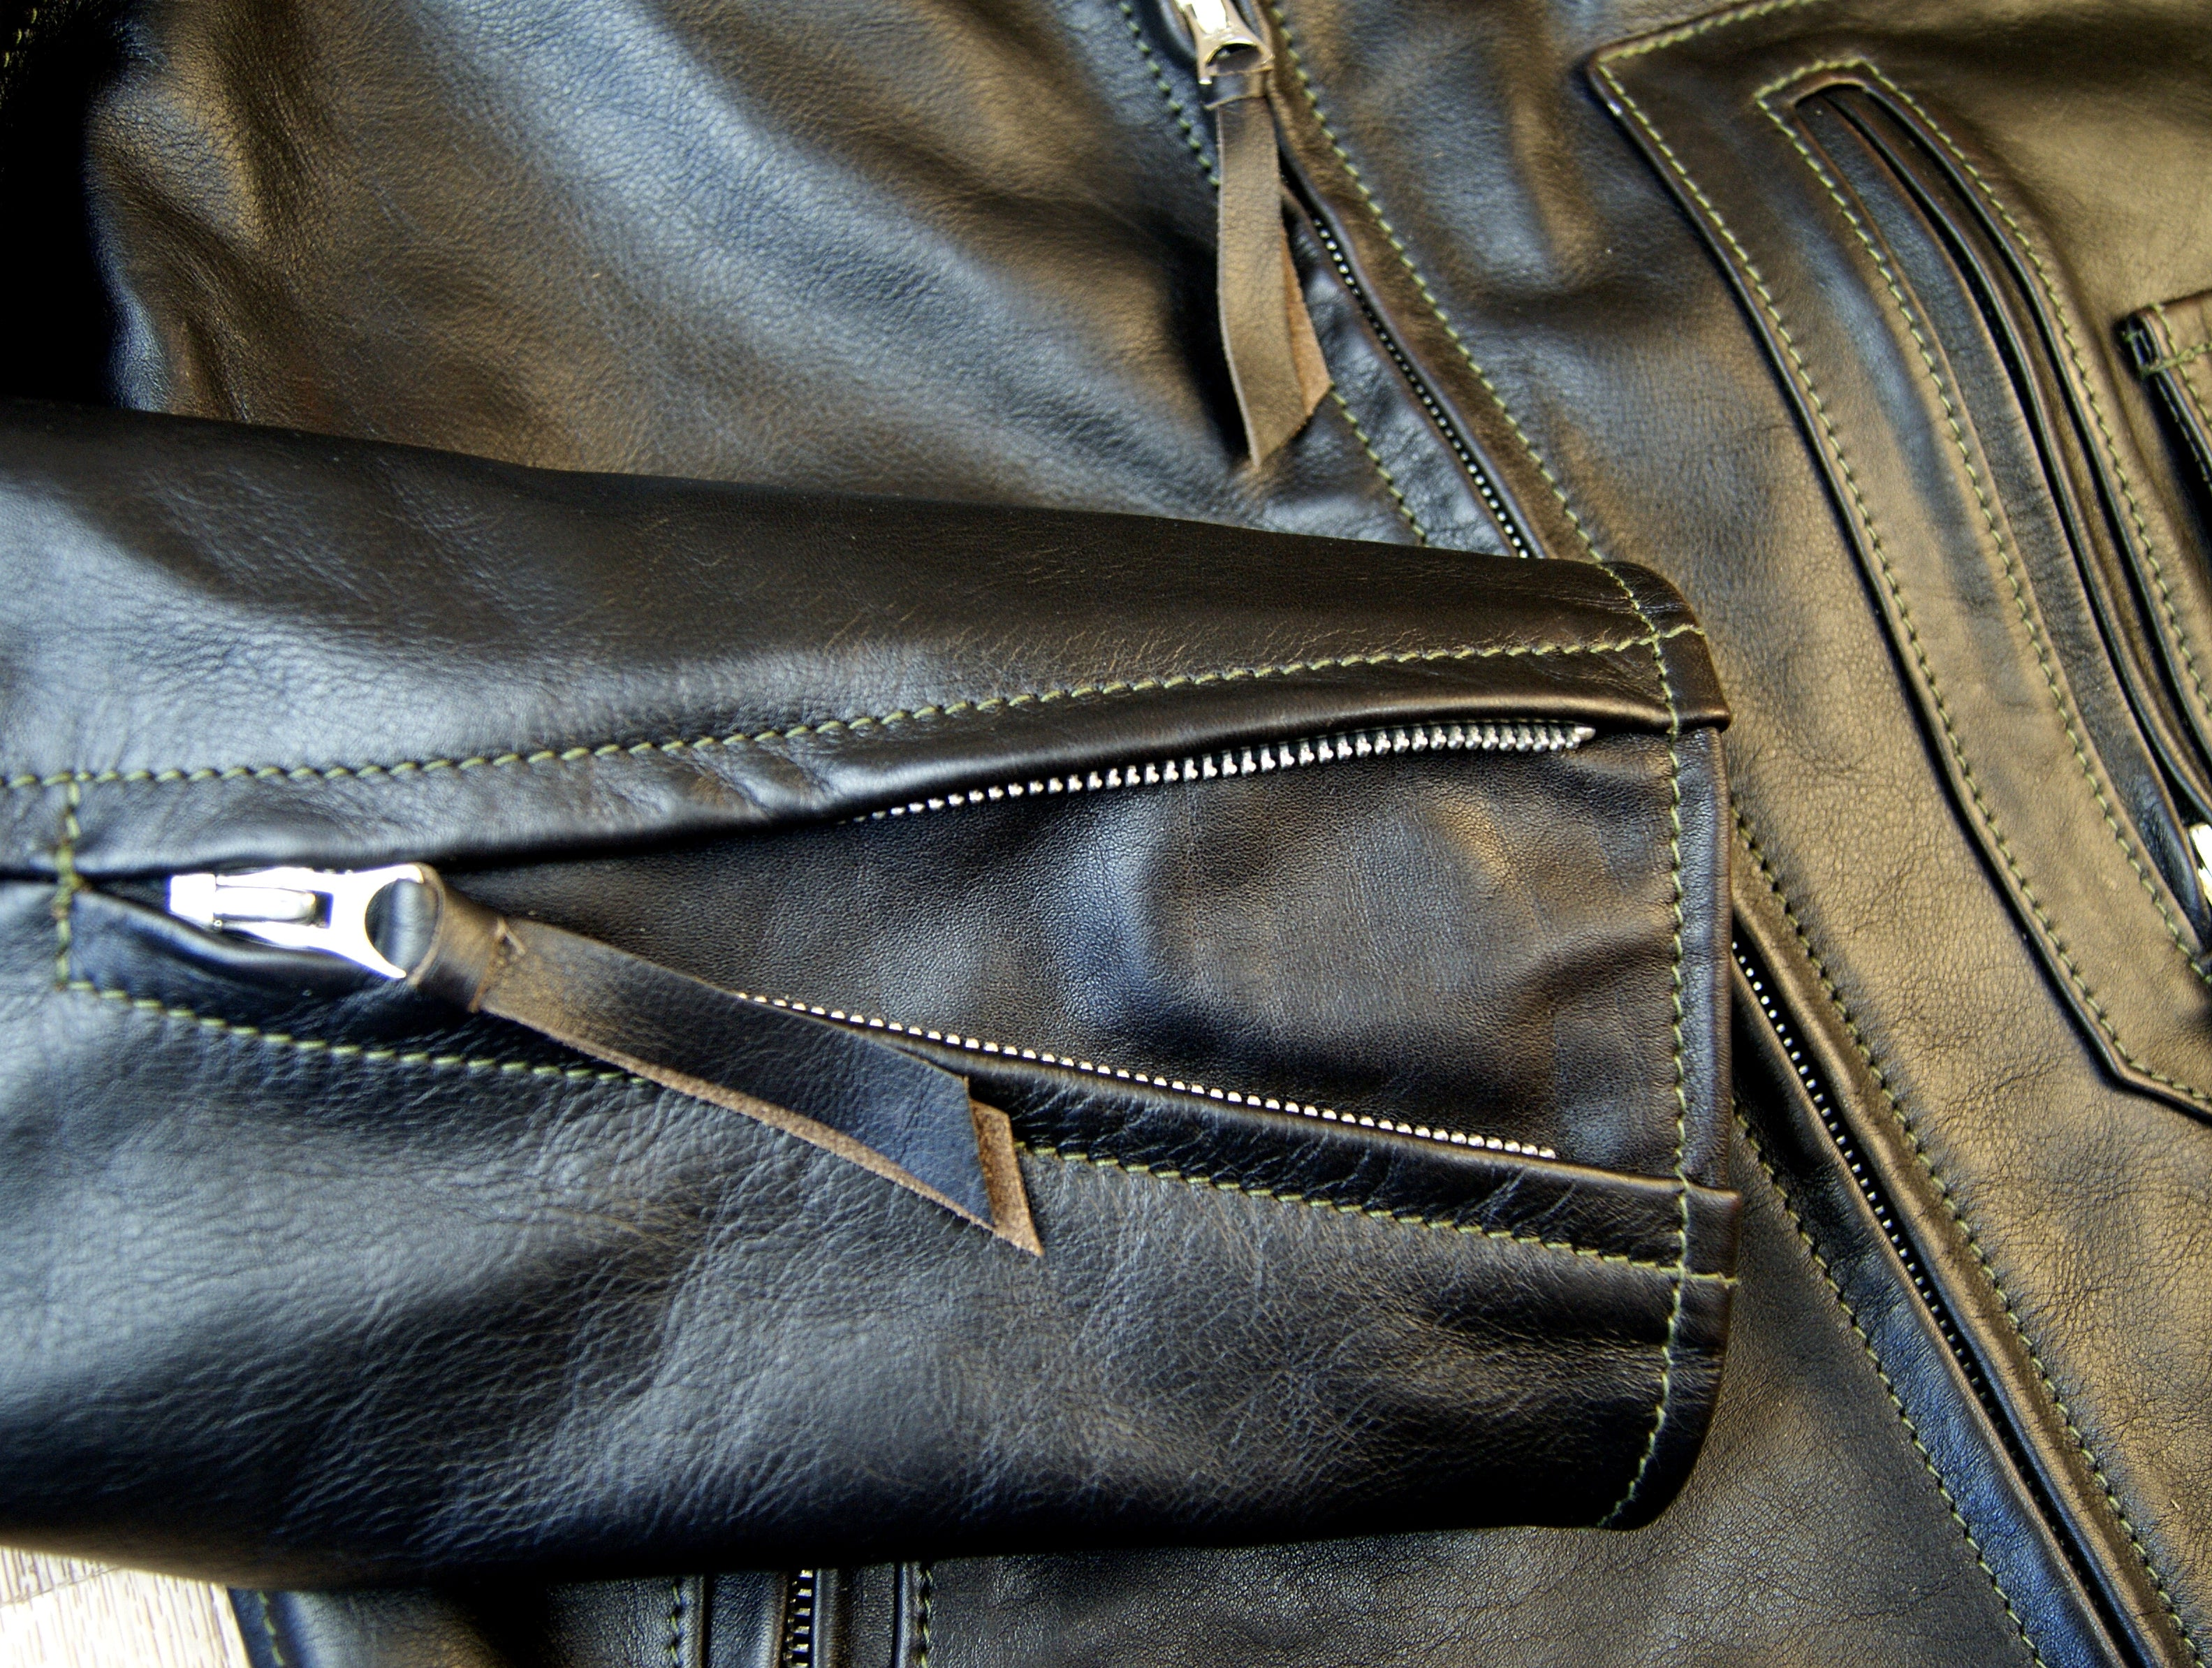 Aero D-Pocket Ridley, size 44, Blackened Brown Vicenza Horsehide